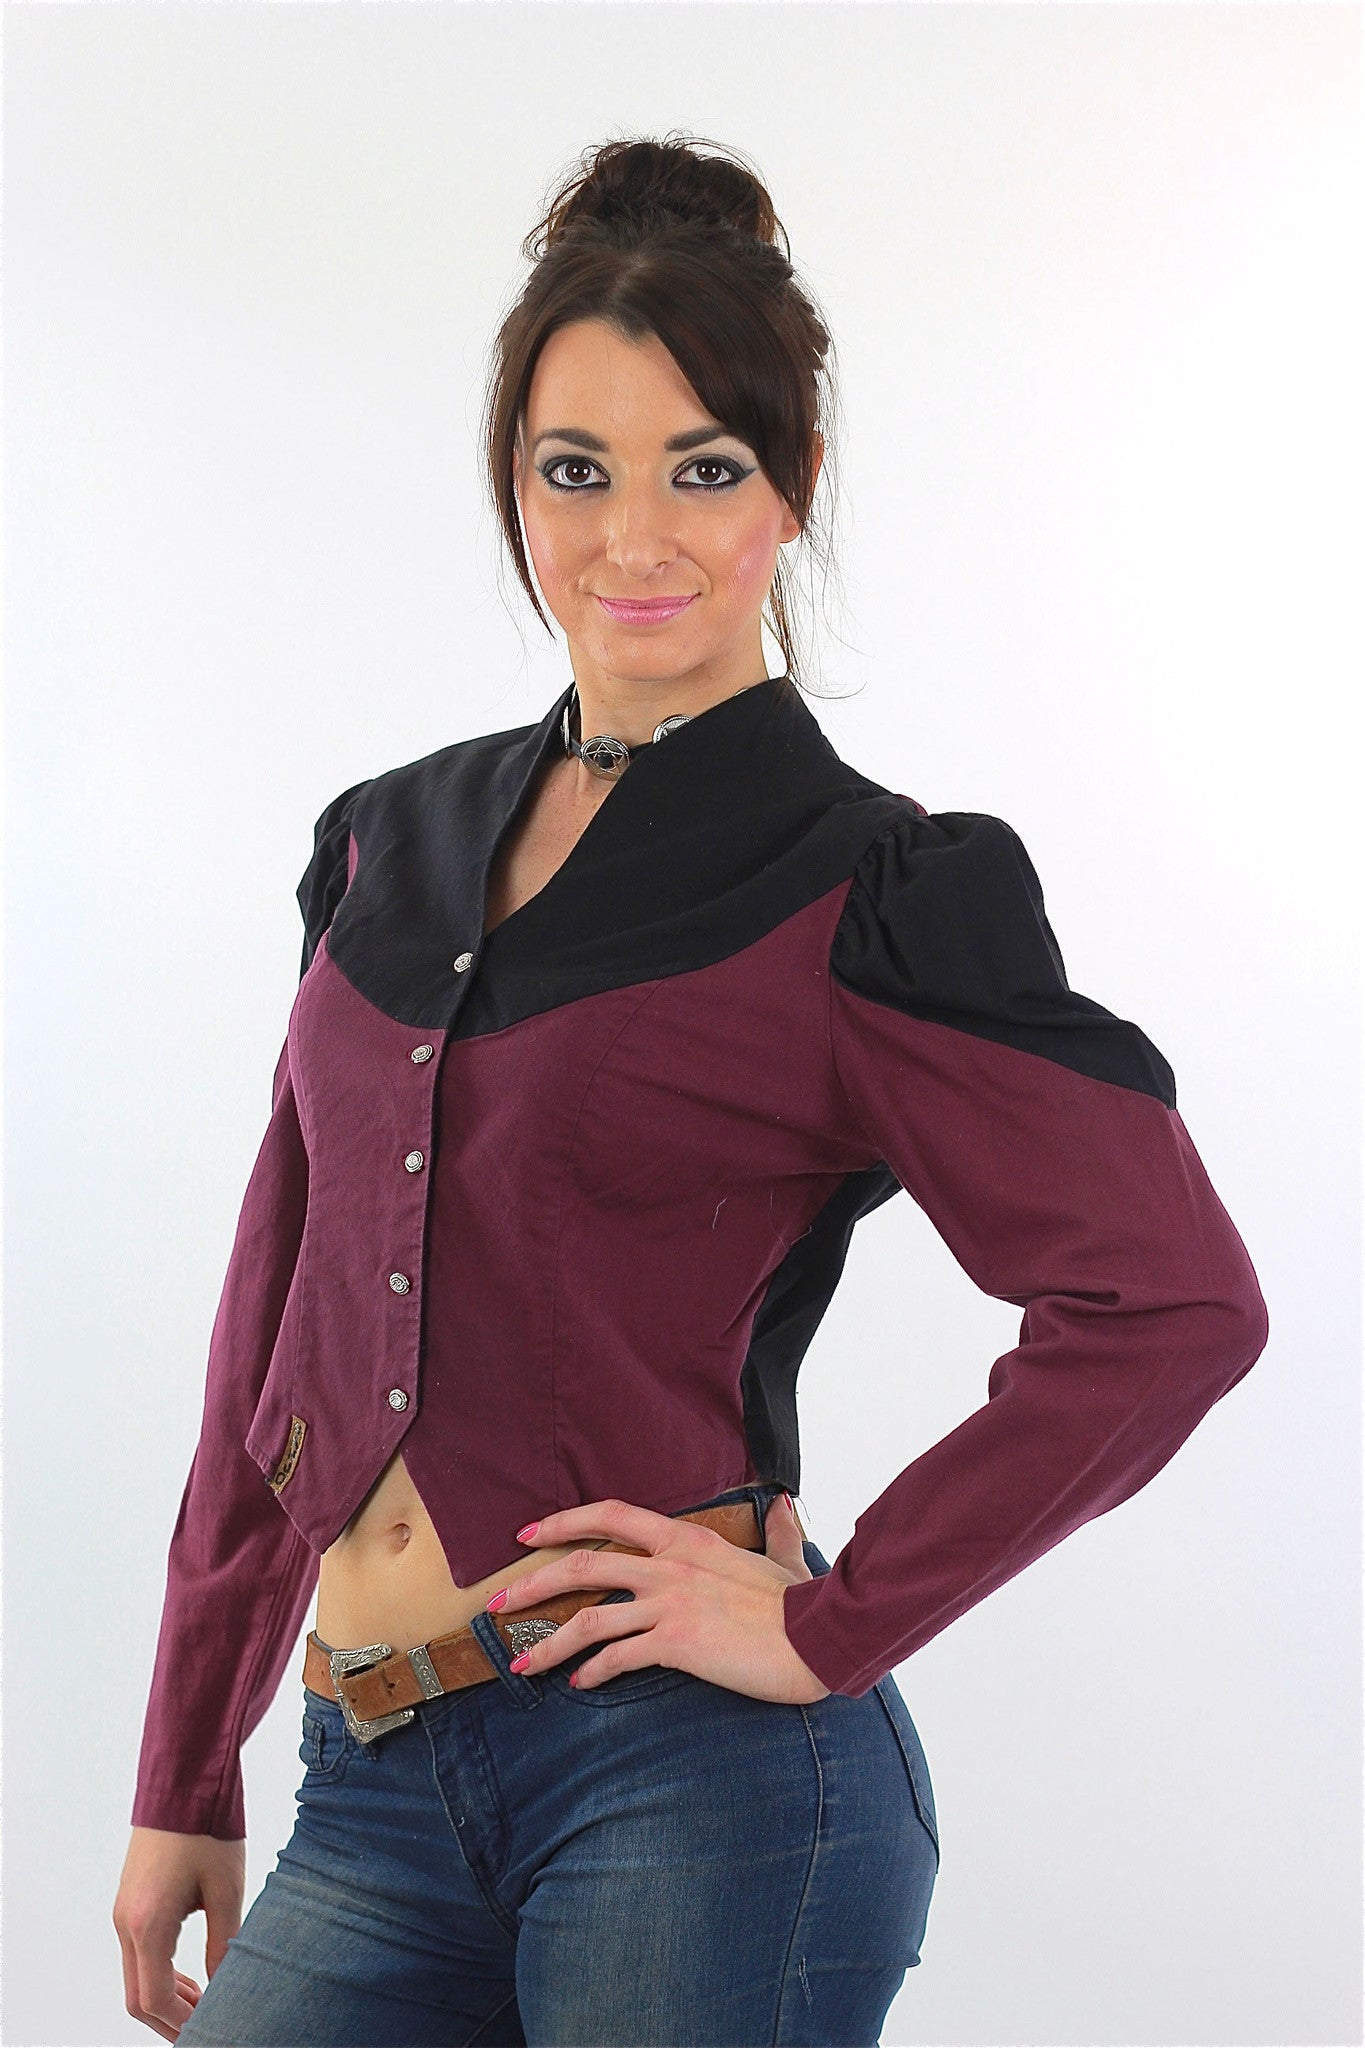 facbce68625ce8 80s Western Concho Gothic Crop Top Colorblock Button Up - shabbybabe - 1